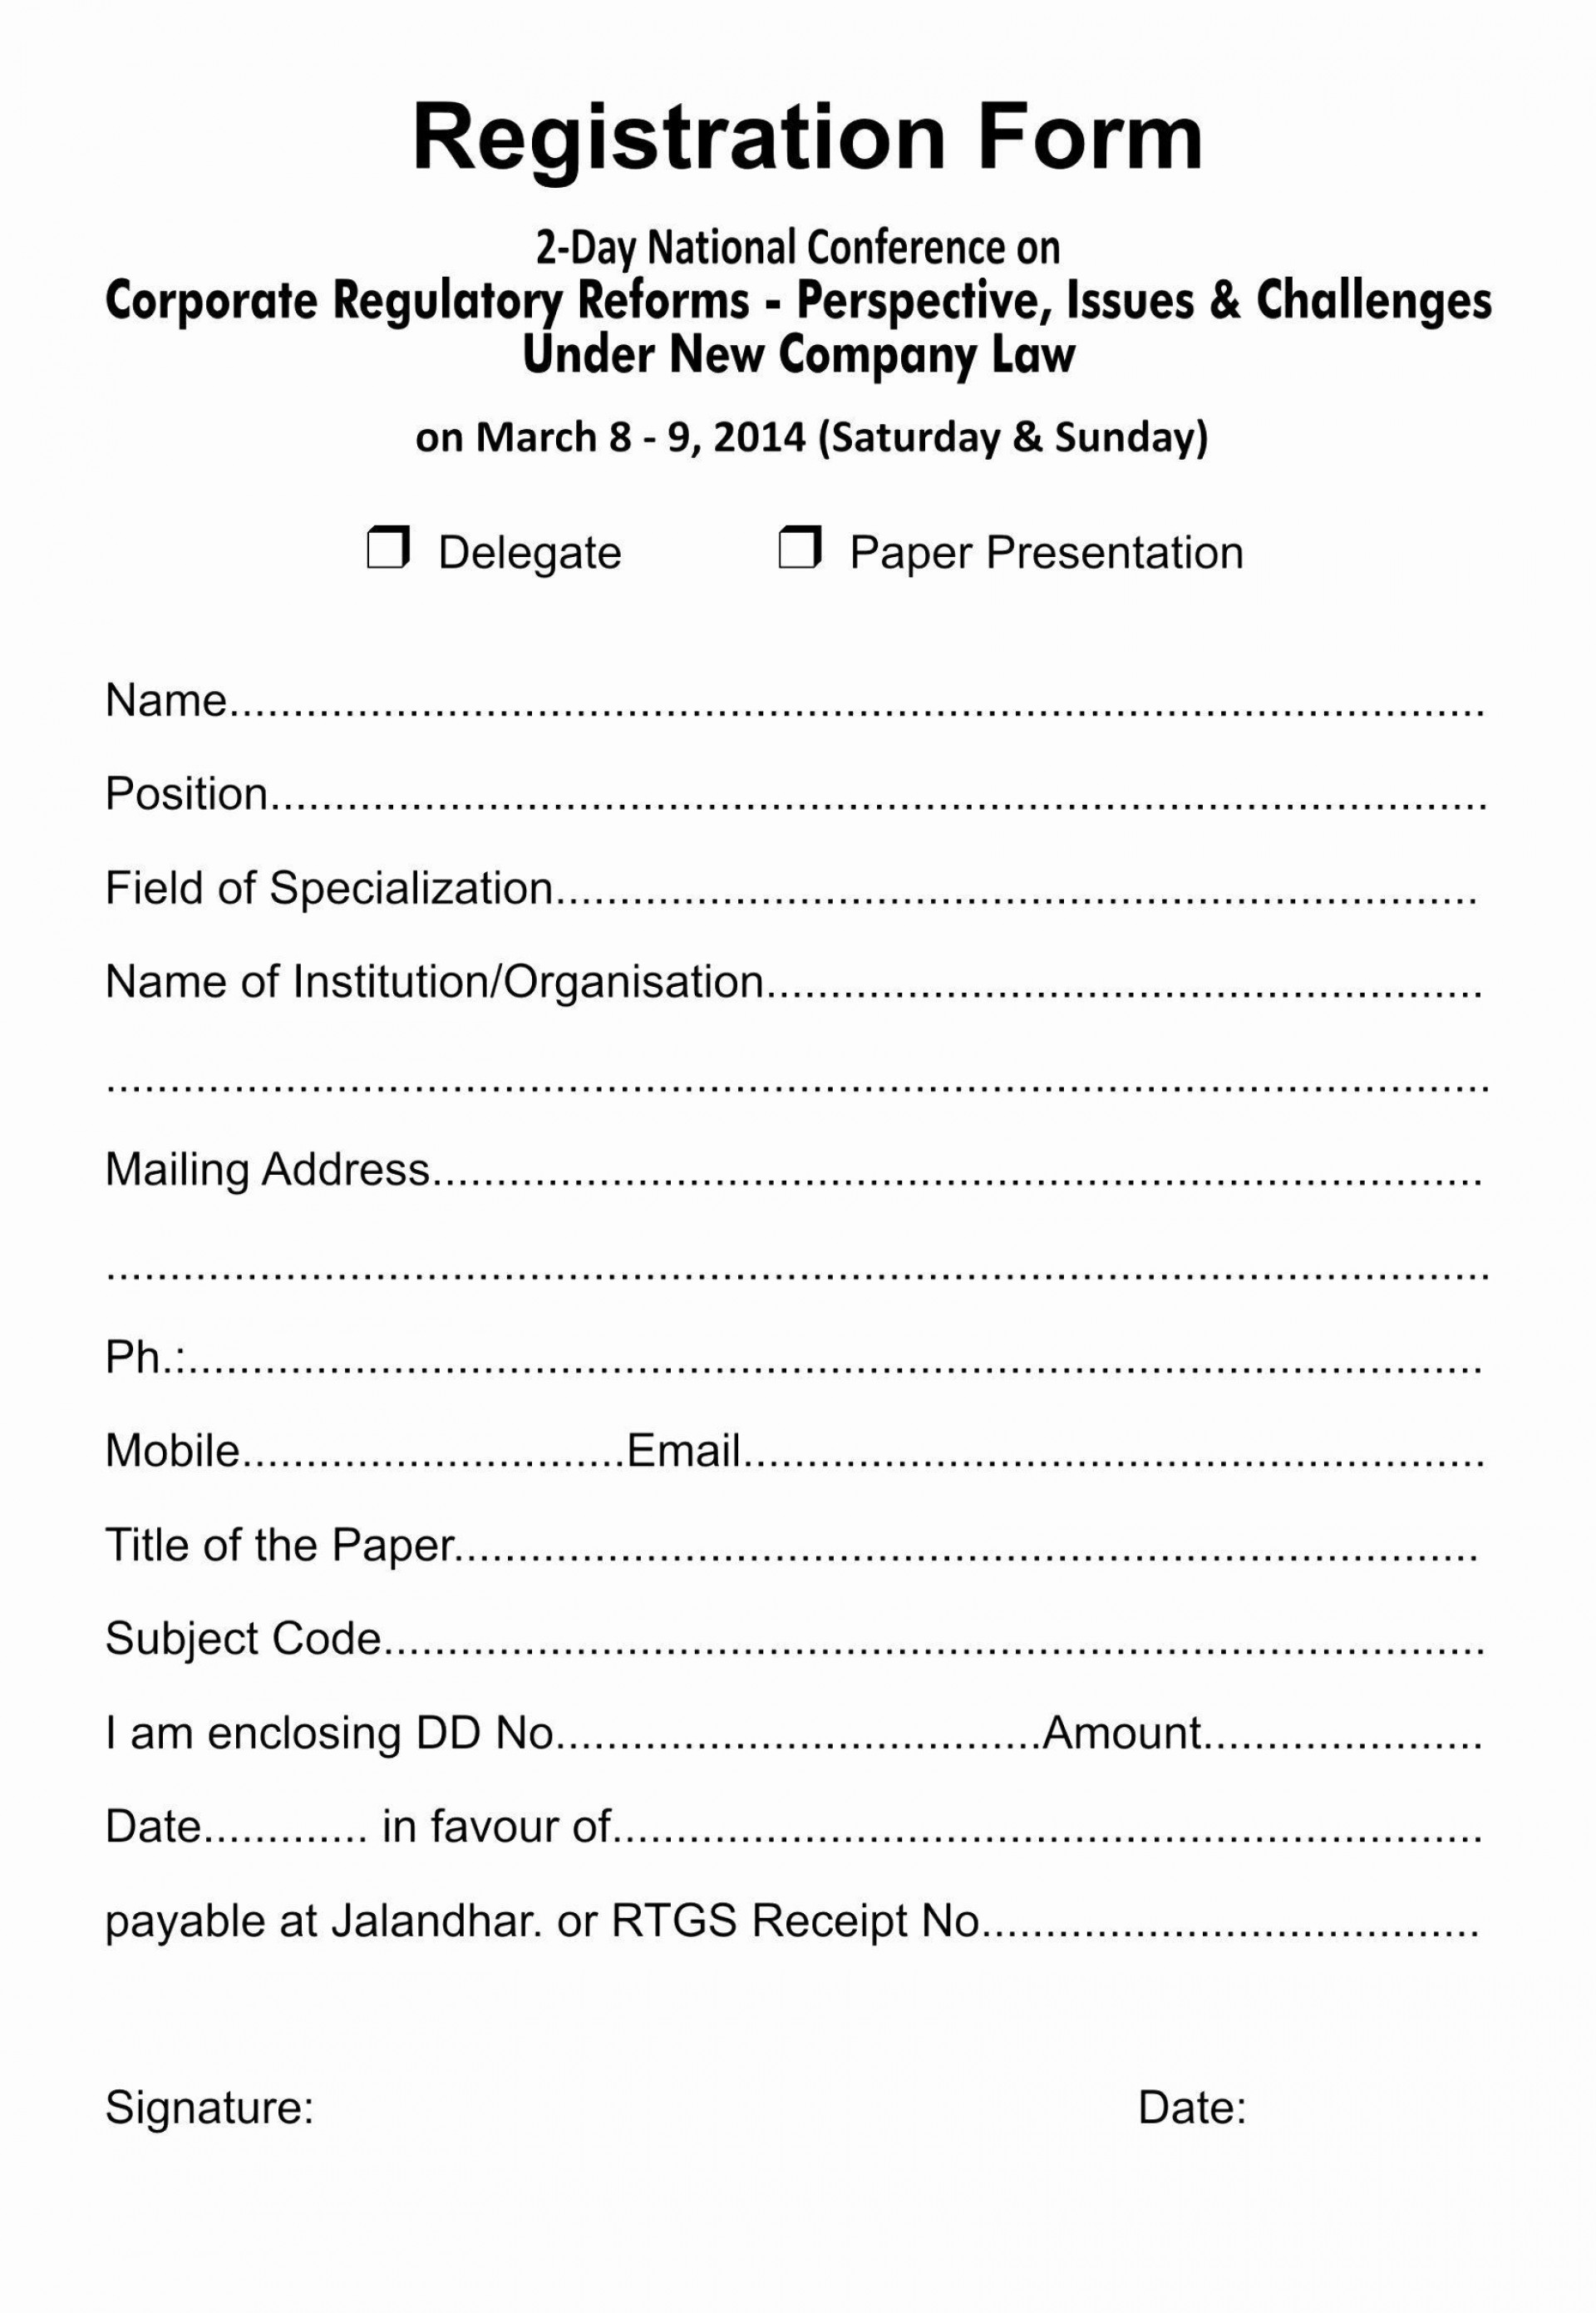 002 Fearsome Registration Form Template Word Design  Conference Free1920